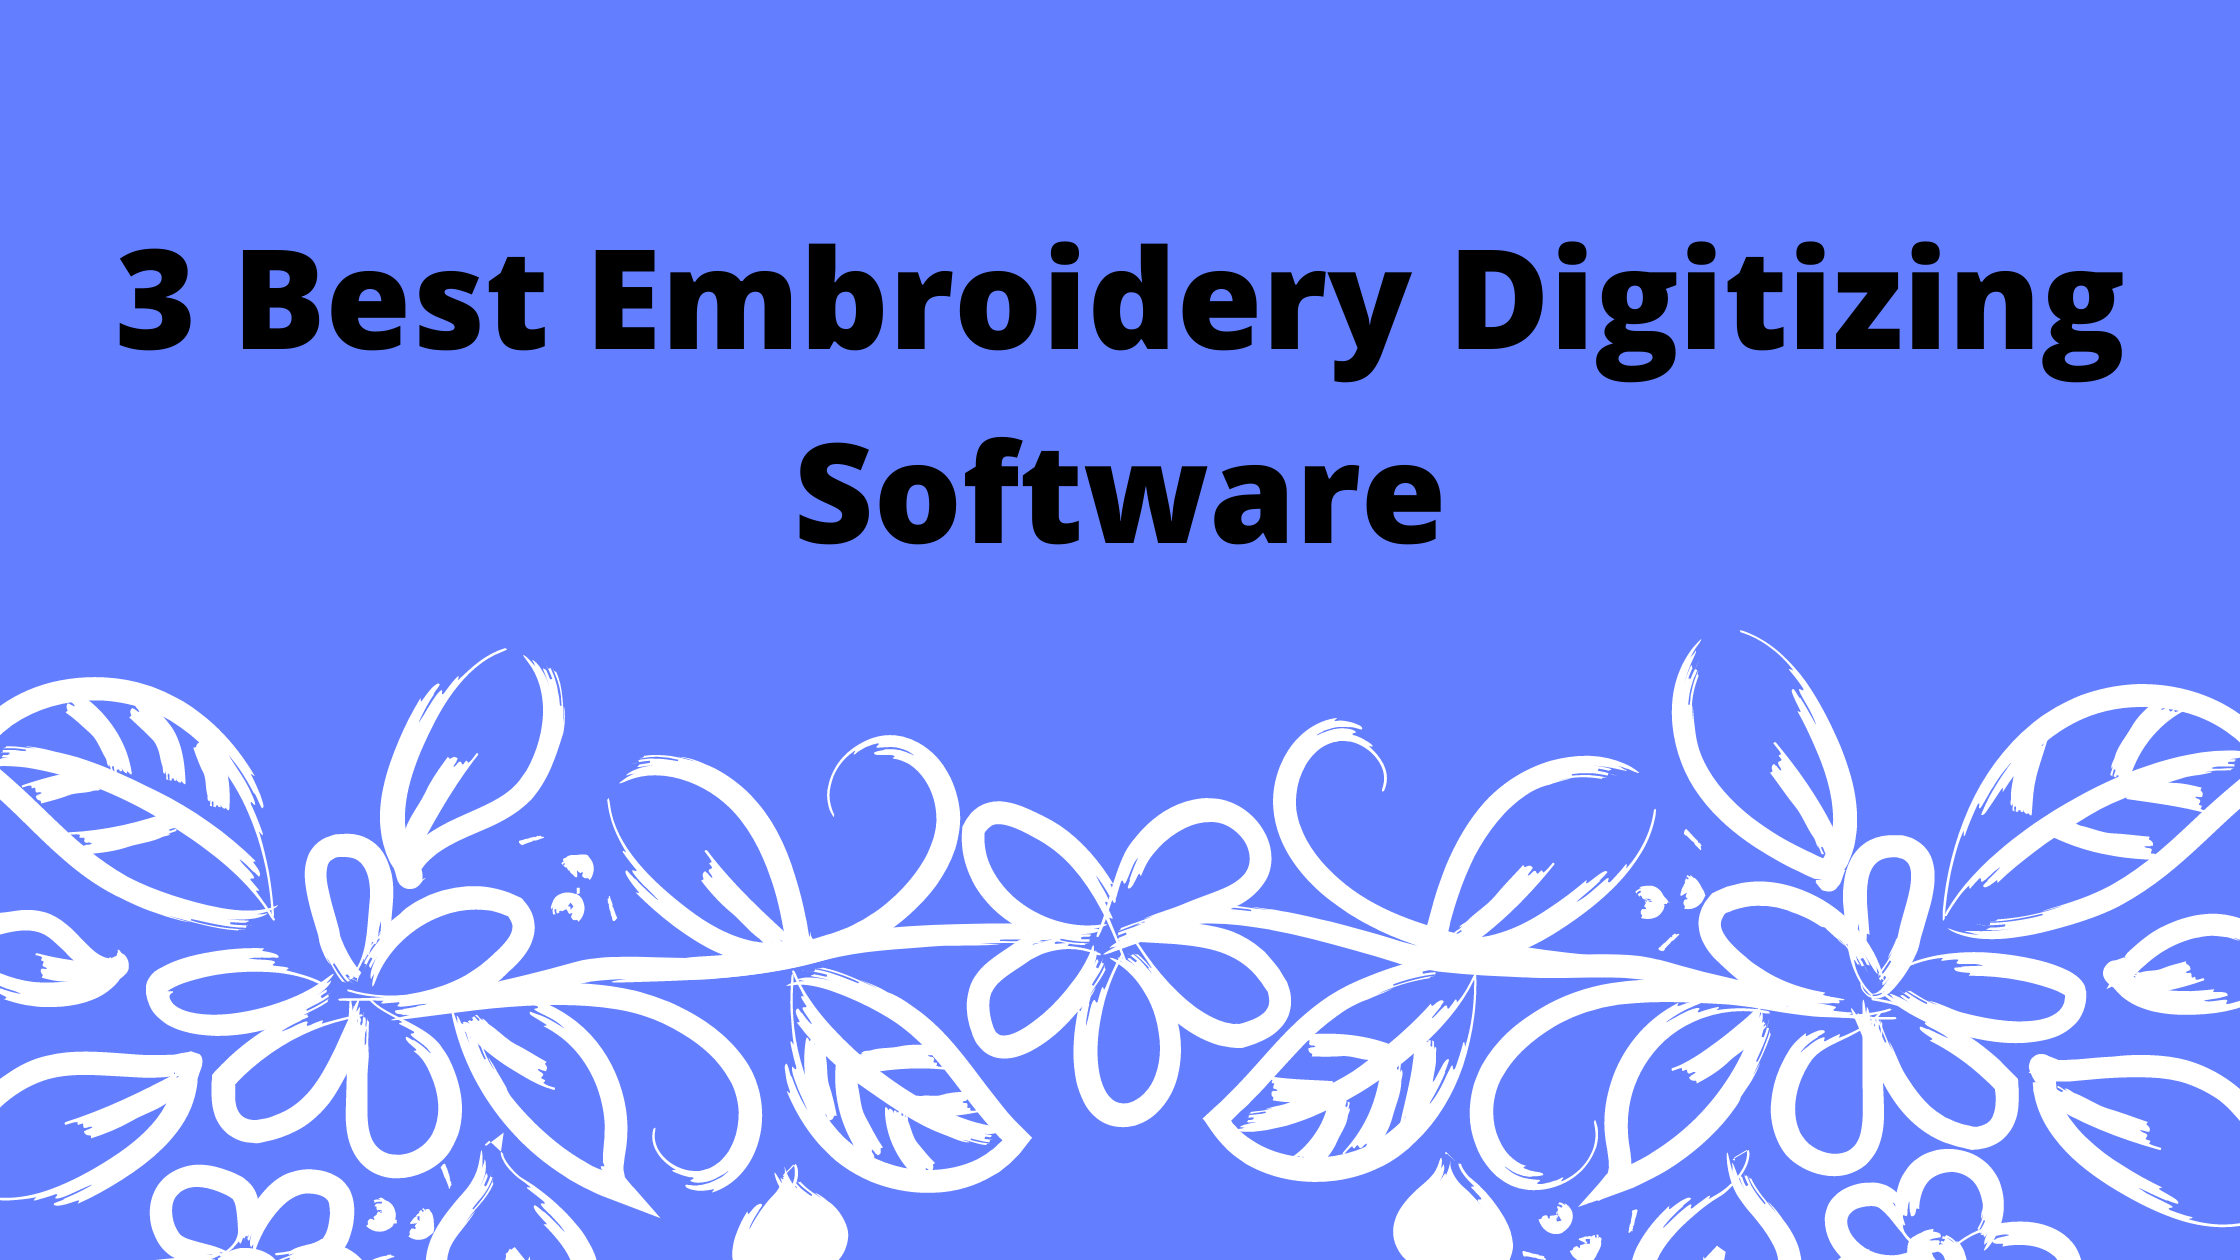 Best Embroidery Digitizing Software